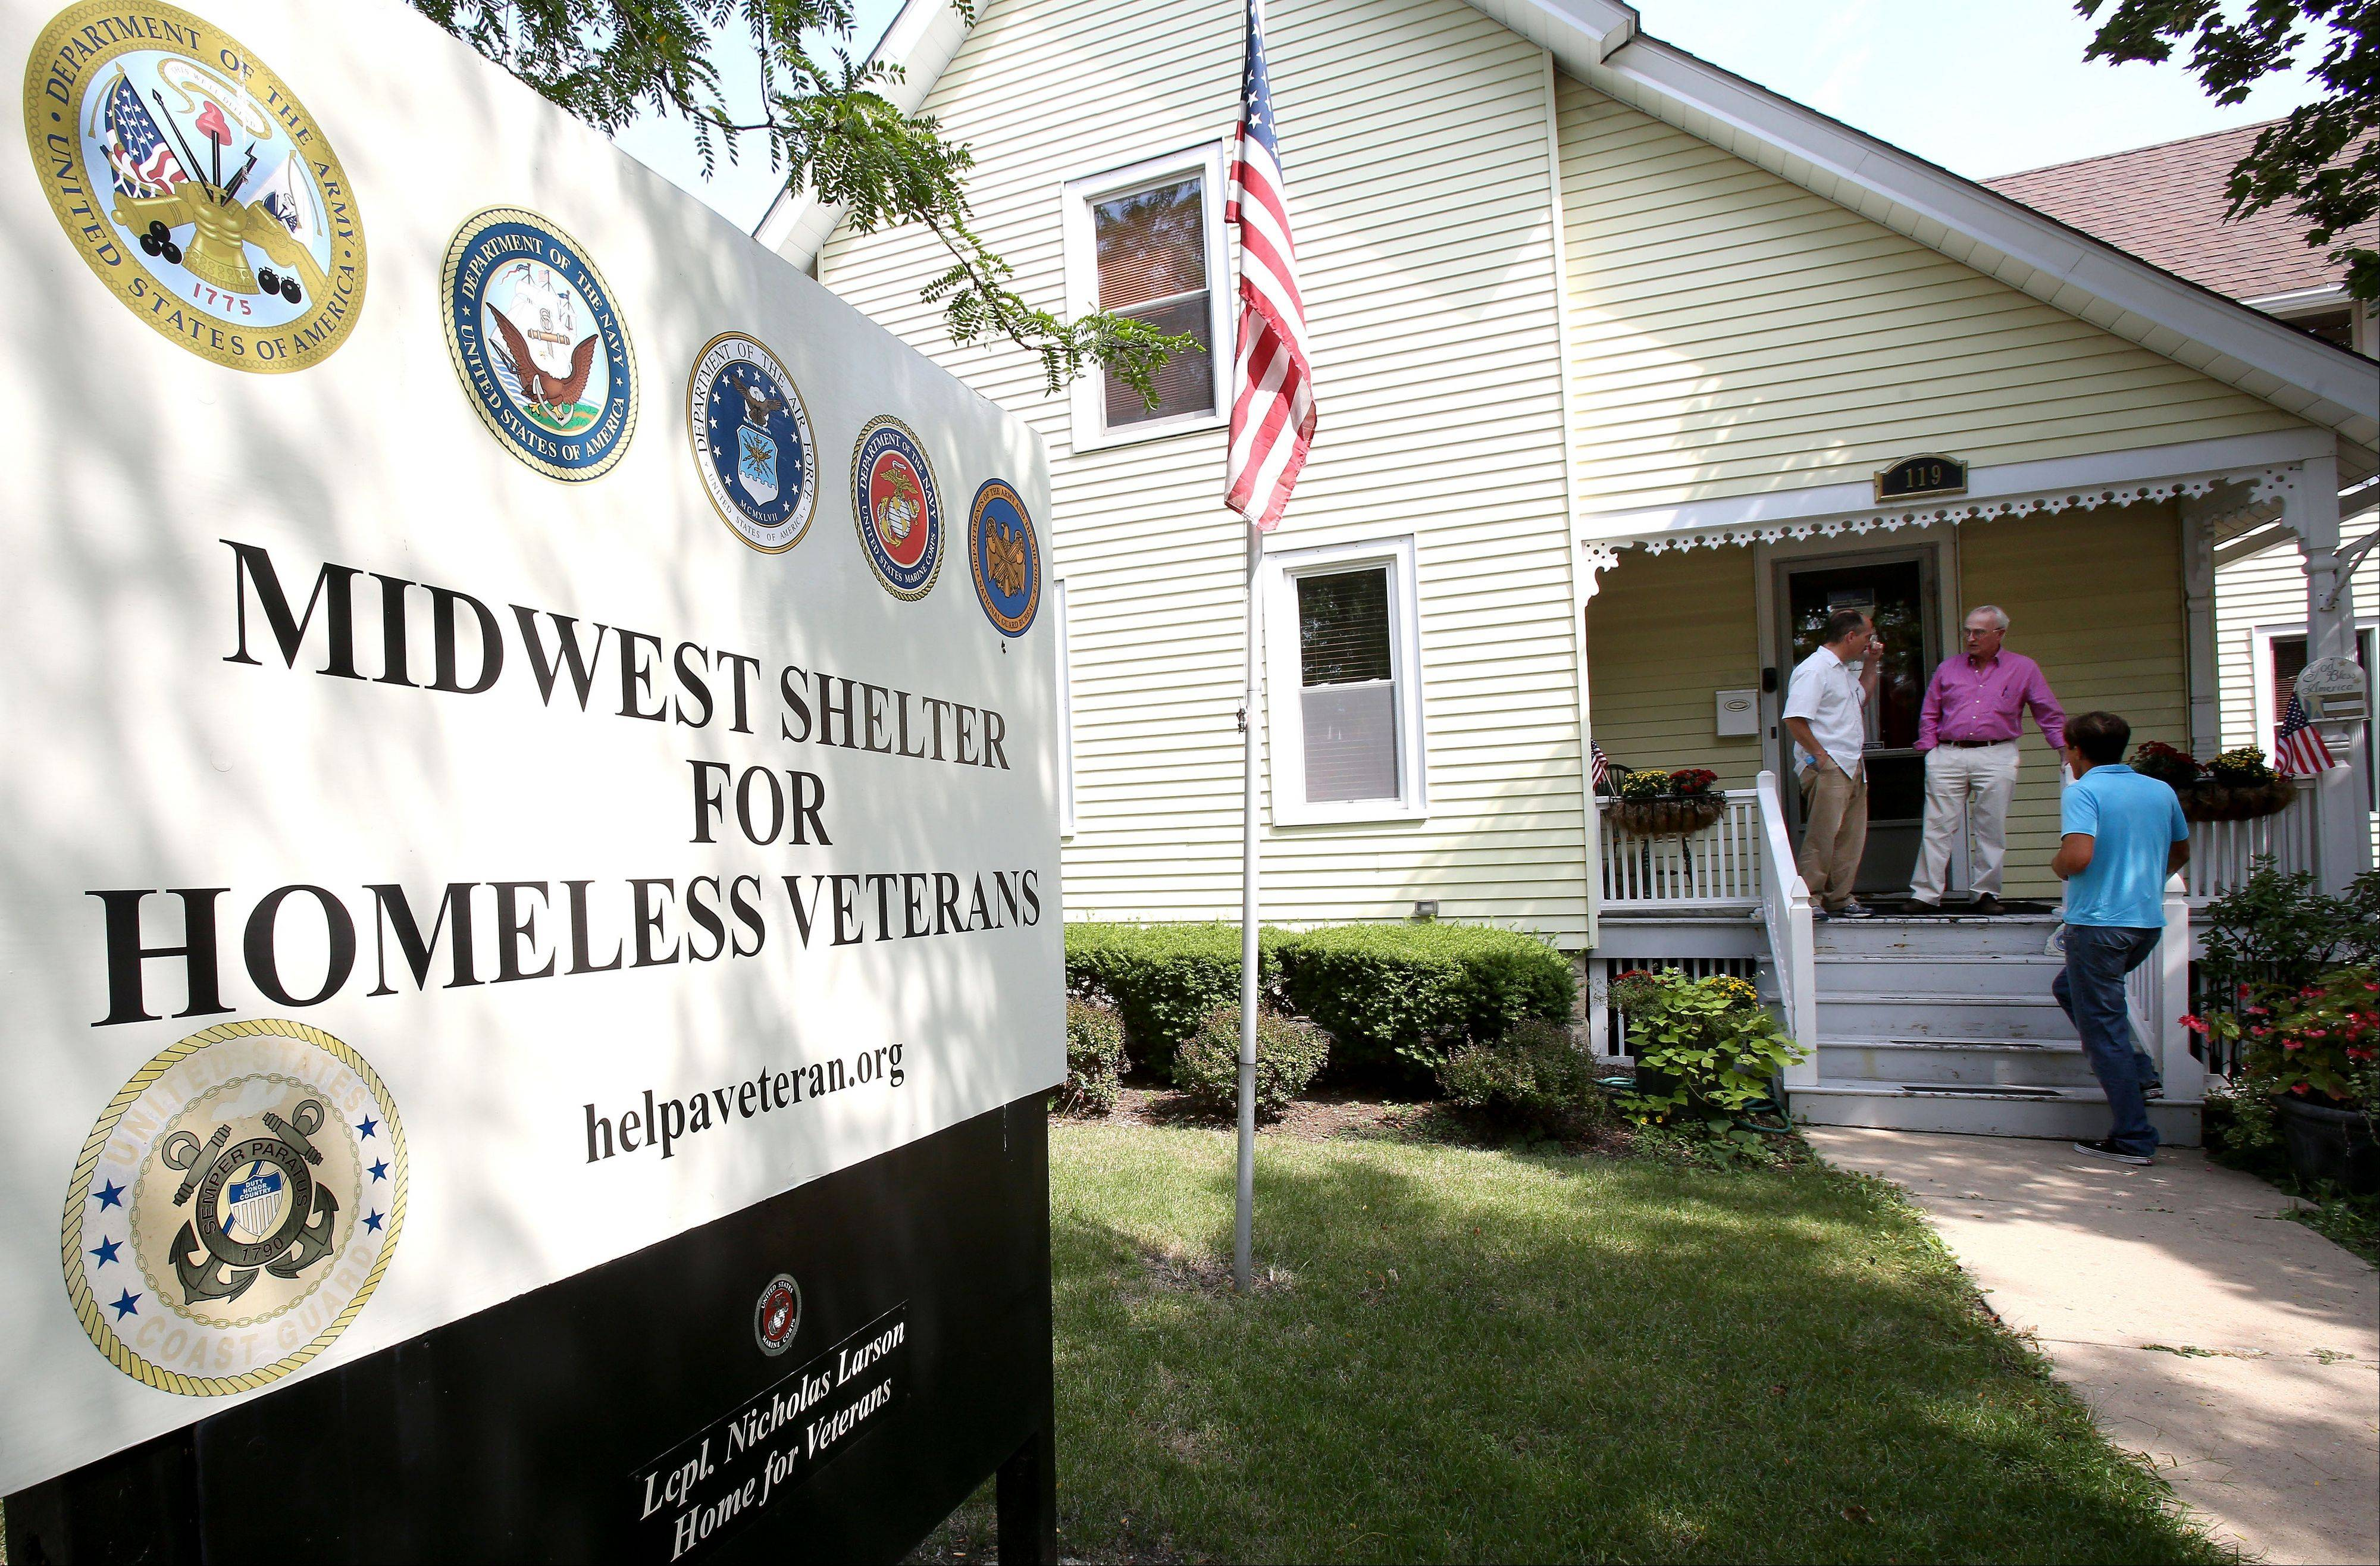 The Midwest Shelter for Homeless Veterans in Wheaton was started by Winfield resident Bob Adams, with a big boost from actors Michael Shannon and Guy Van Swearingen.